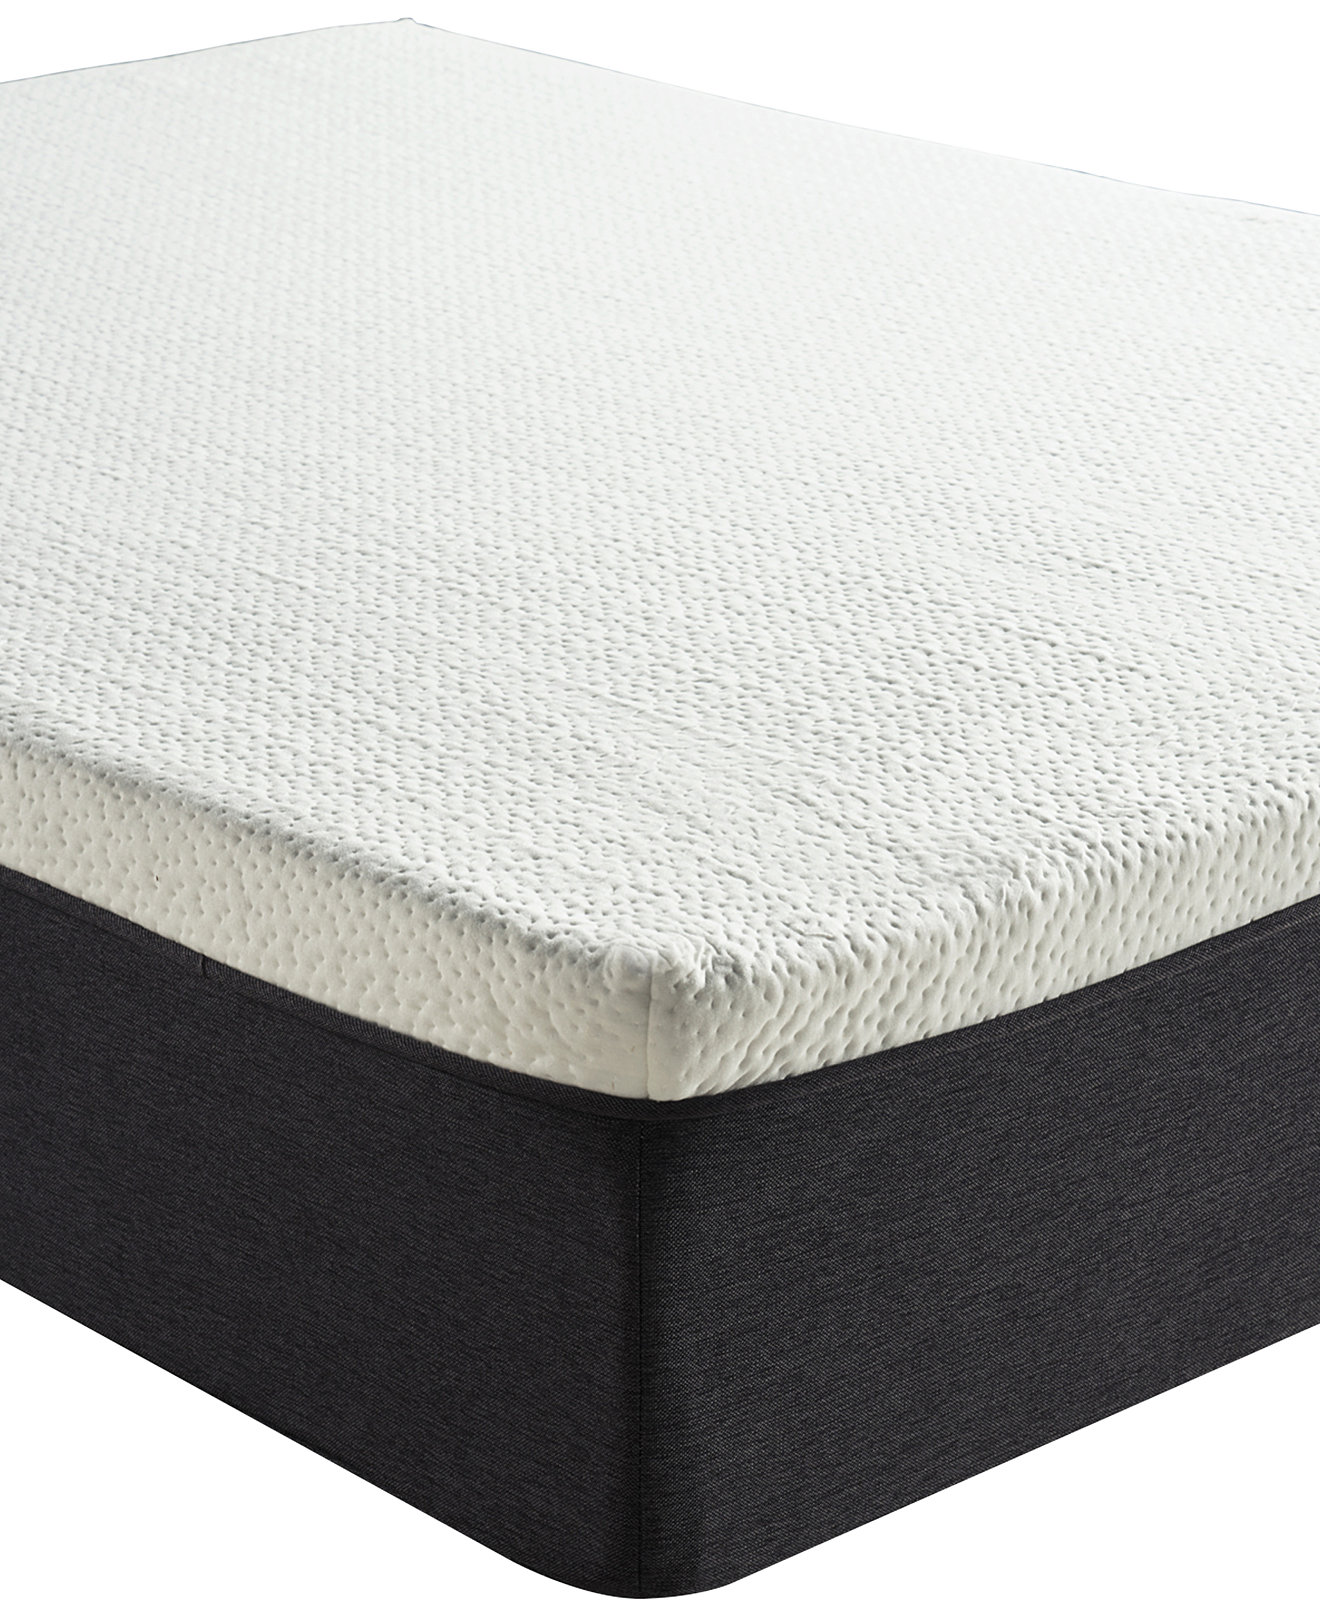 Sleep Trends Ladan 12 Cool Gel Memory Foam Plush Top Mattresses Quick Ship